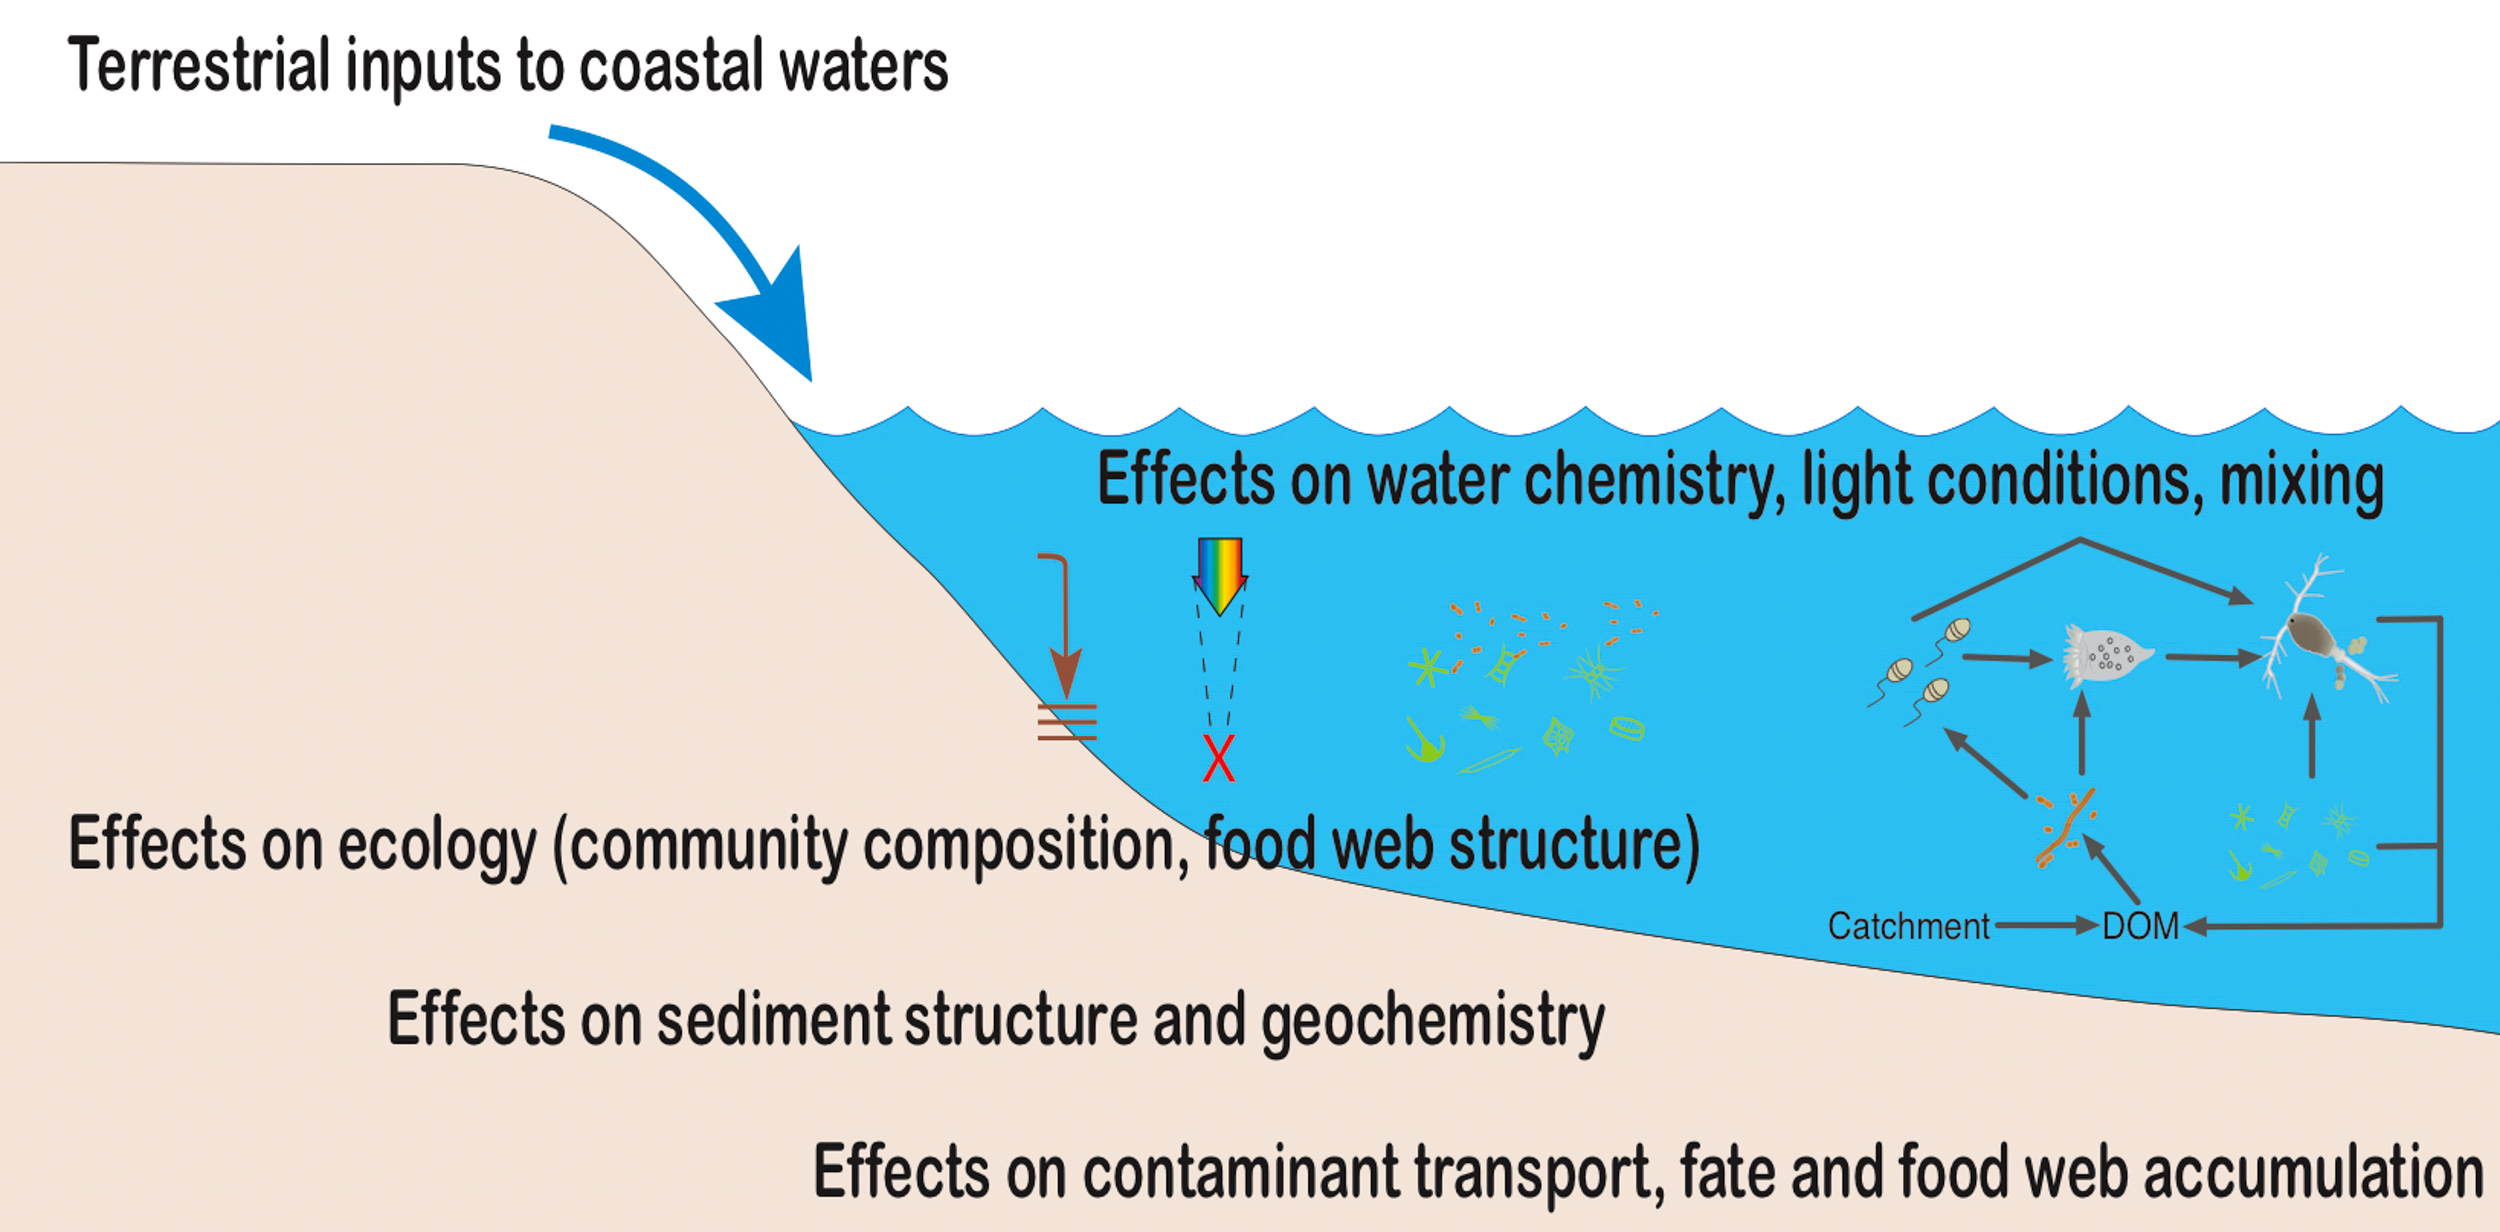 Conceptual framework for how terrestrial inputs can affect coastal biogeochemistry, ecology and contaminant dynamics. DOM = dissolved organic matter